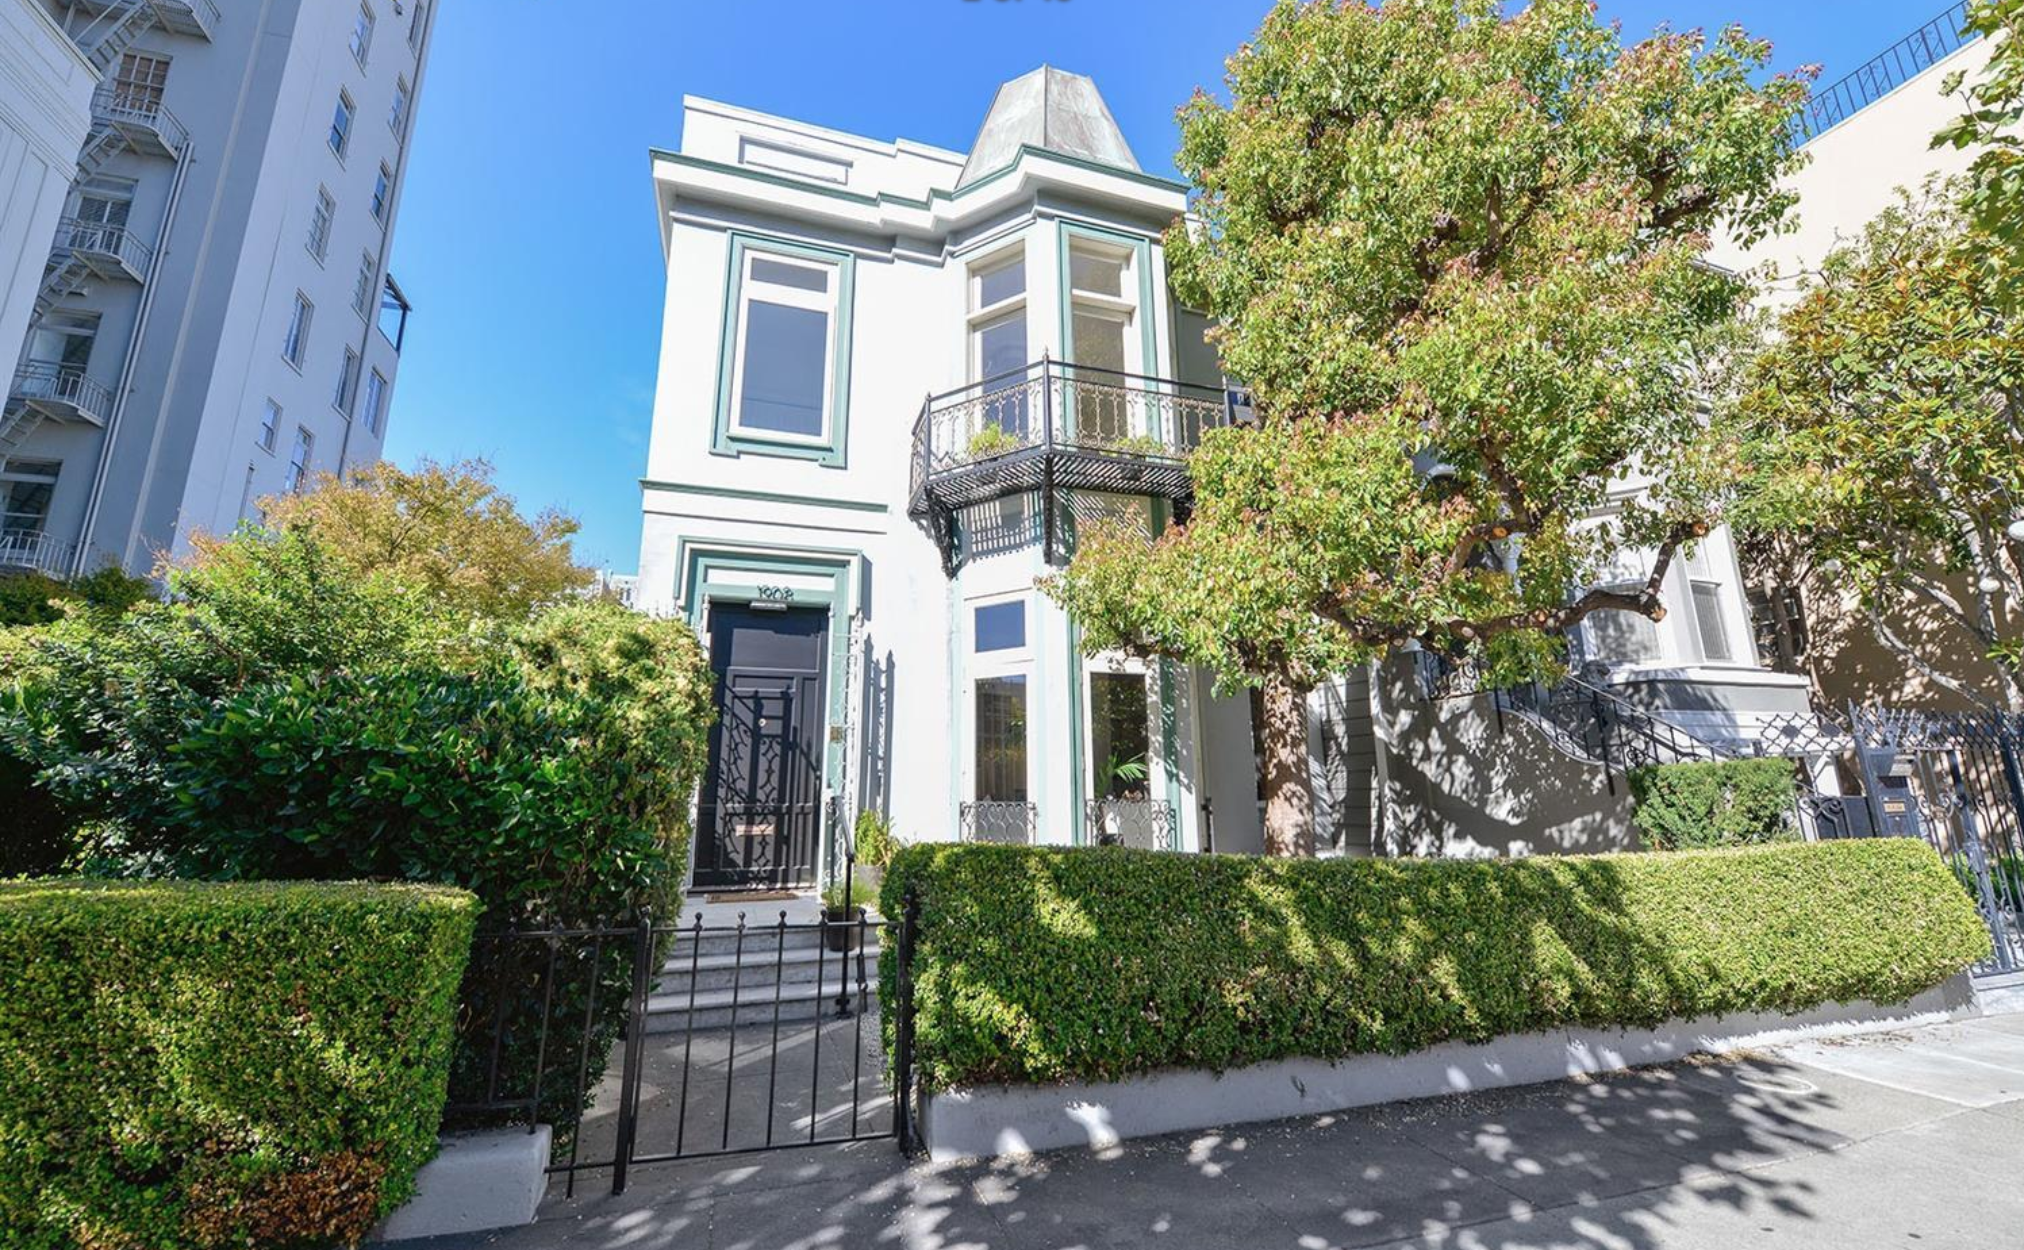 1908 Broadway Street - Pacific Heights